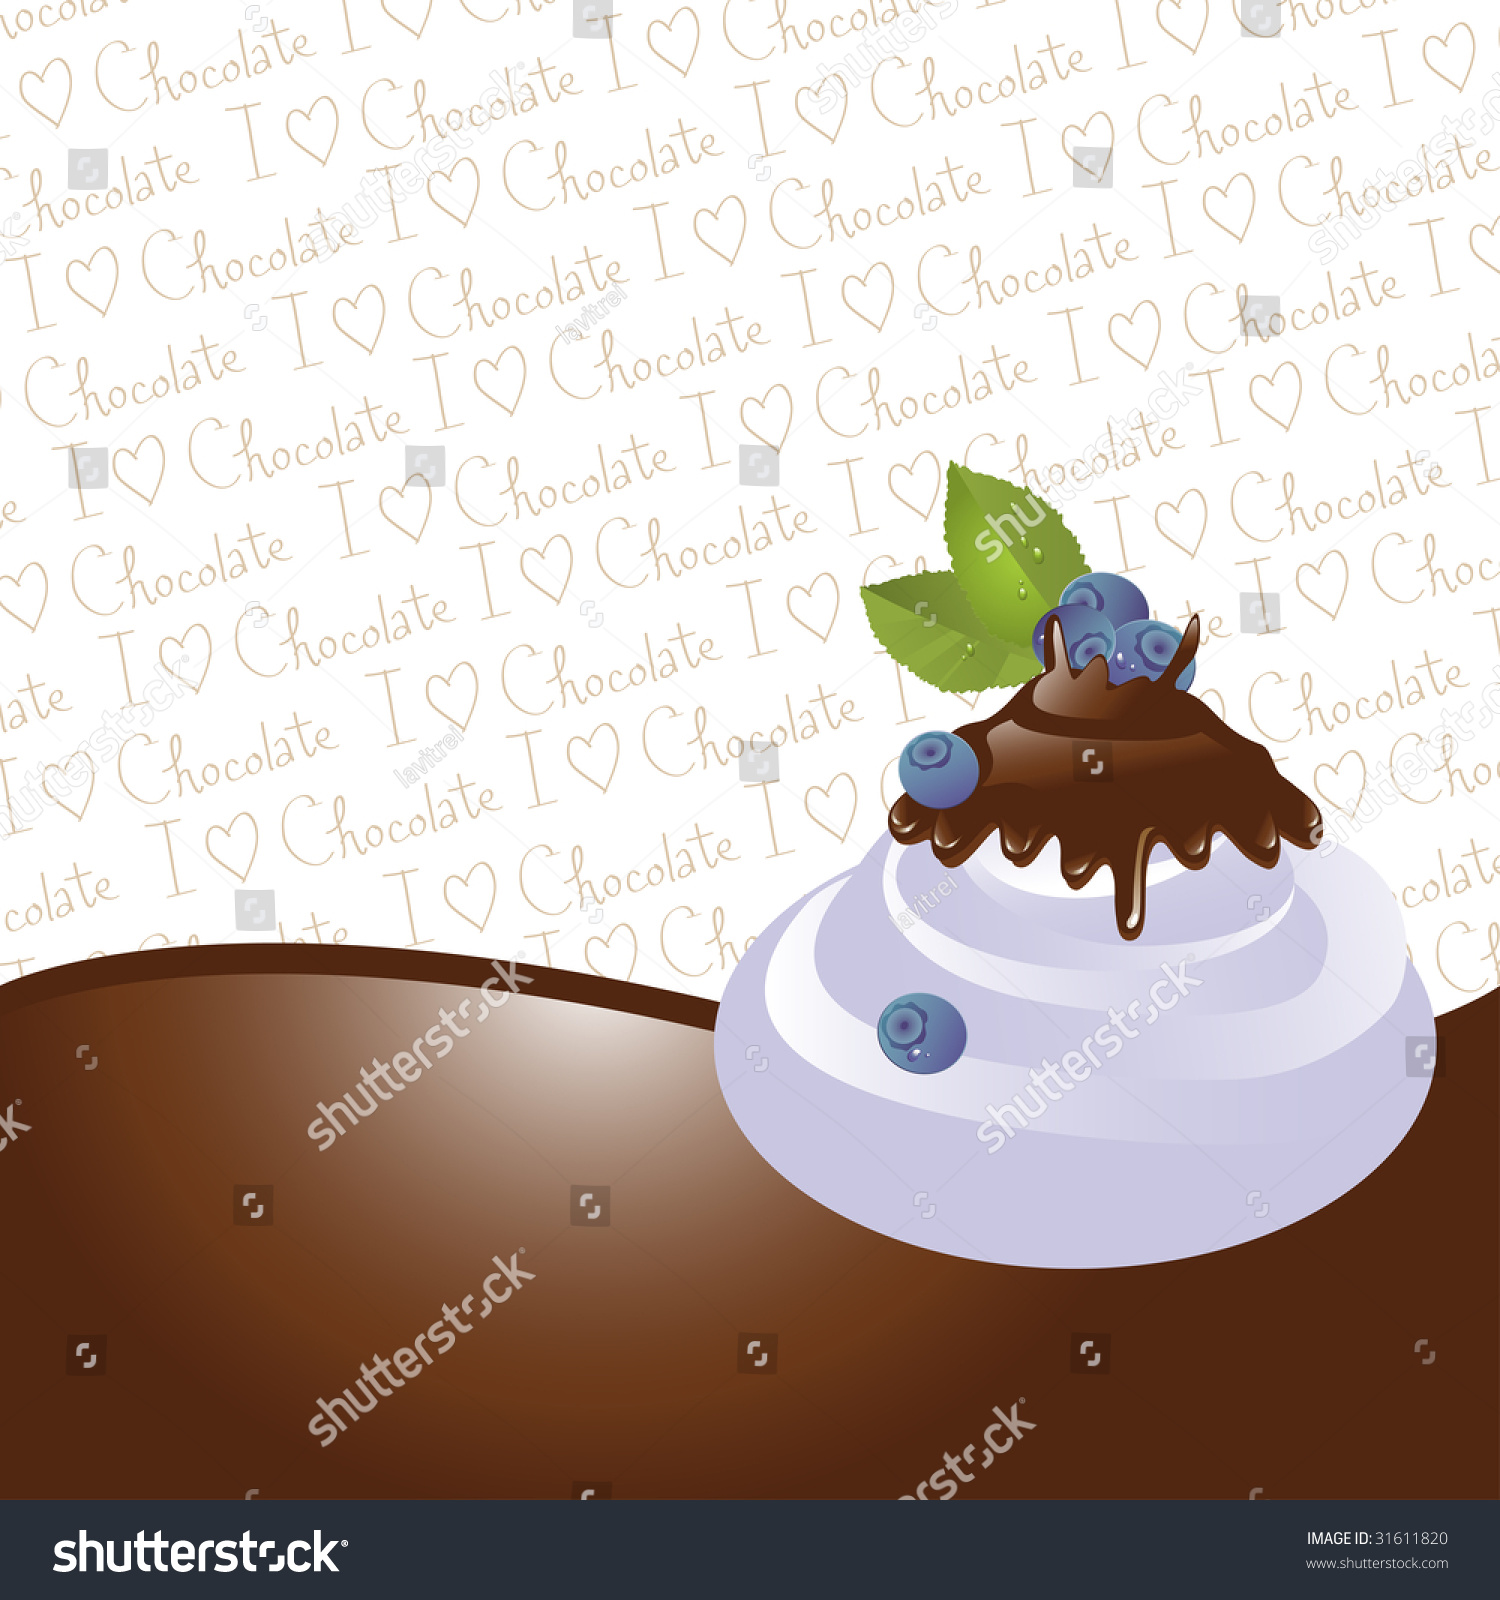 Ice Cream Background Sparking Shiny Decoration Free Vector: Chocolate Dipped Bilberries On Ice Cream Stock Vector